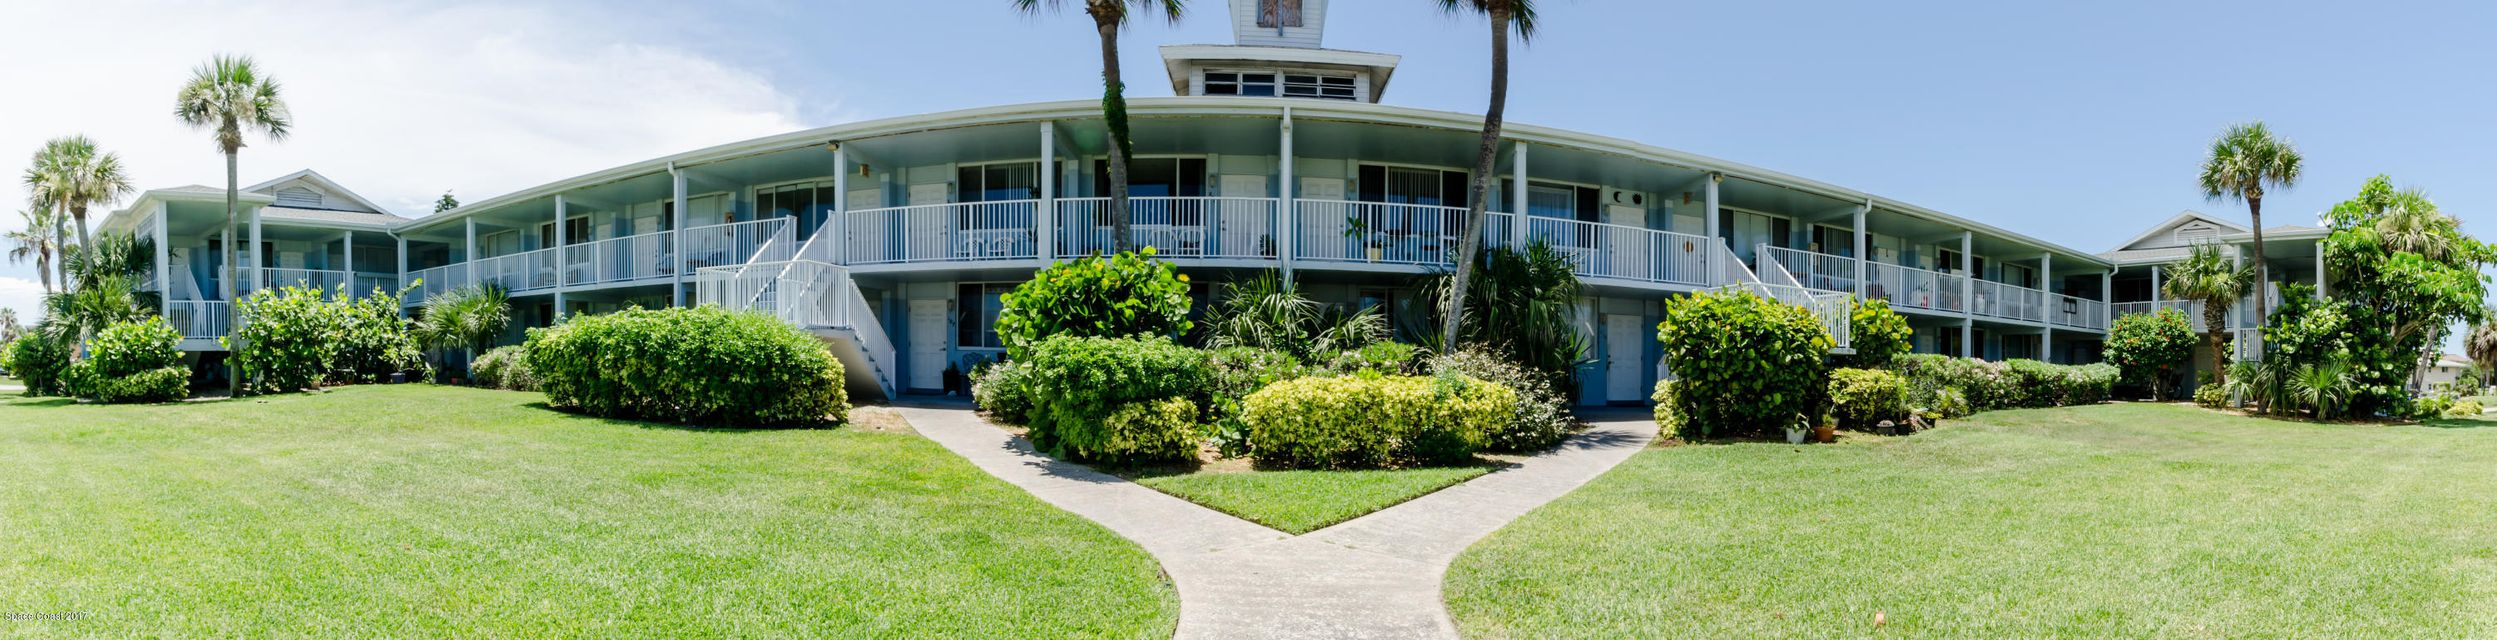 Multi-Family Home for Sale at 494 S Atlantic 494 S Atlantic Cocoa Beach, Florida 32931 United States